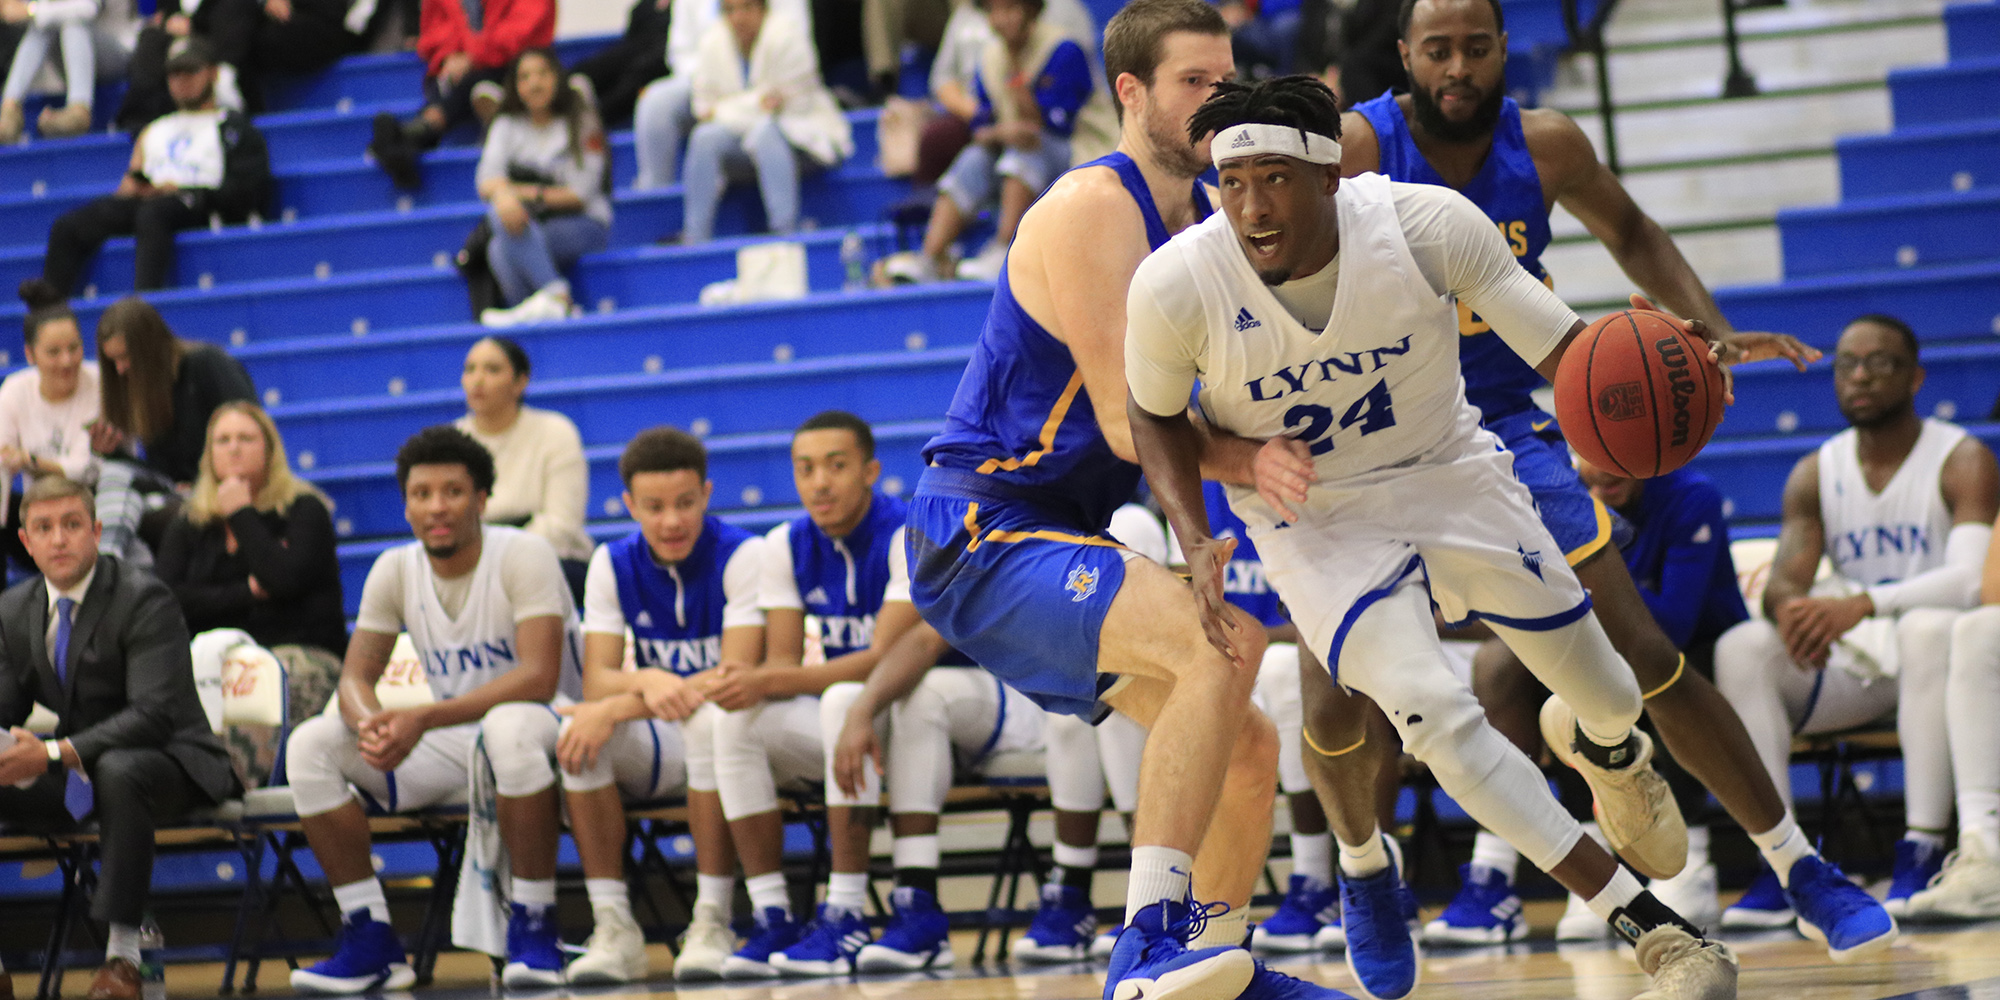 Men's Basketball Uses Late Free Throws to Stay Undefeated At Home